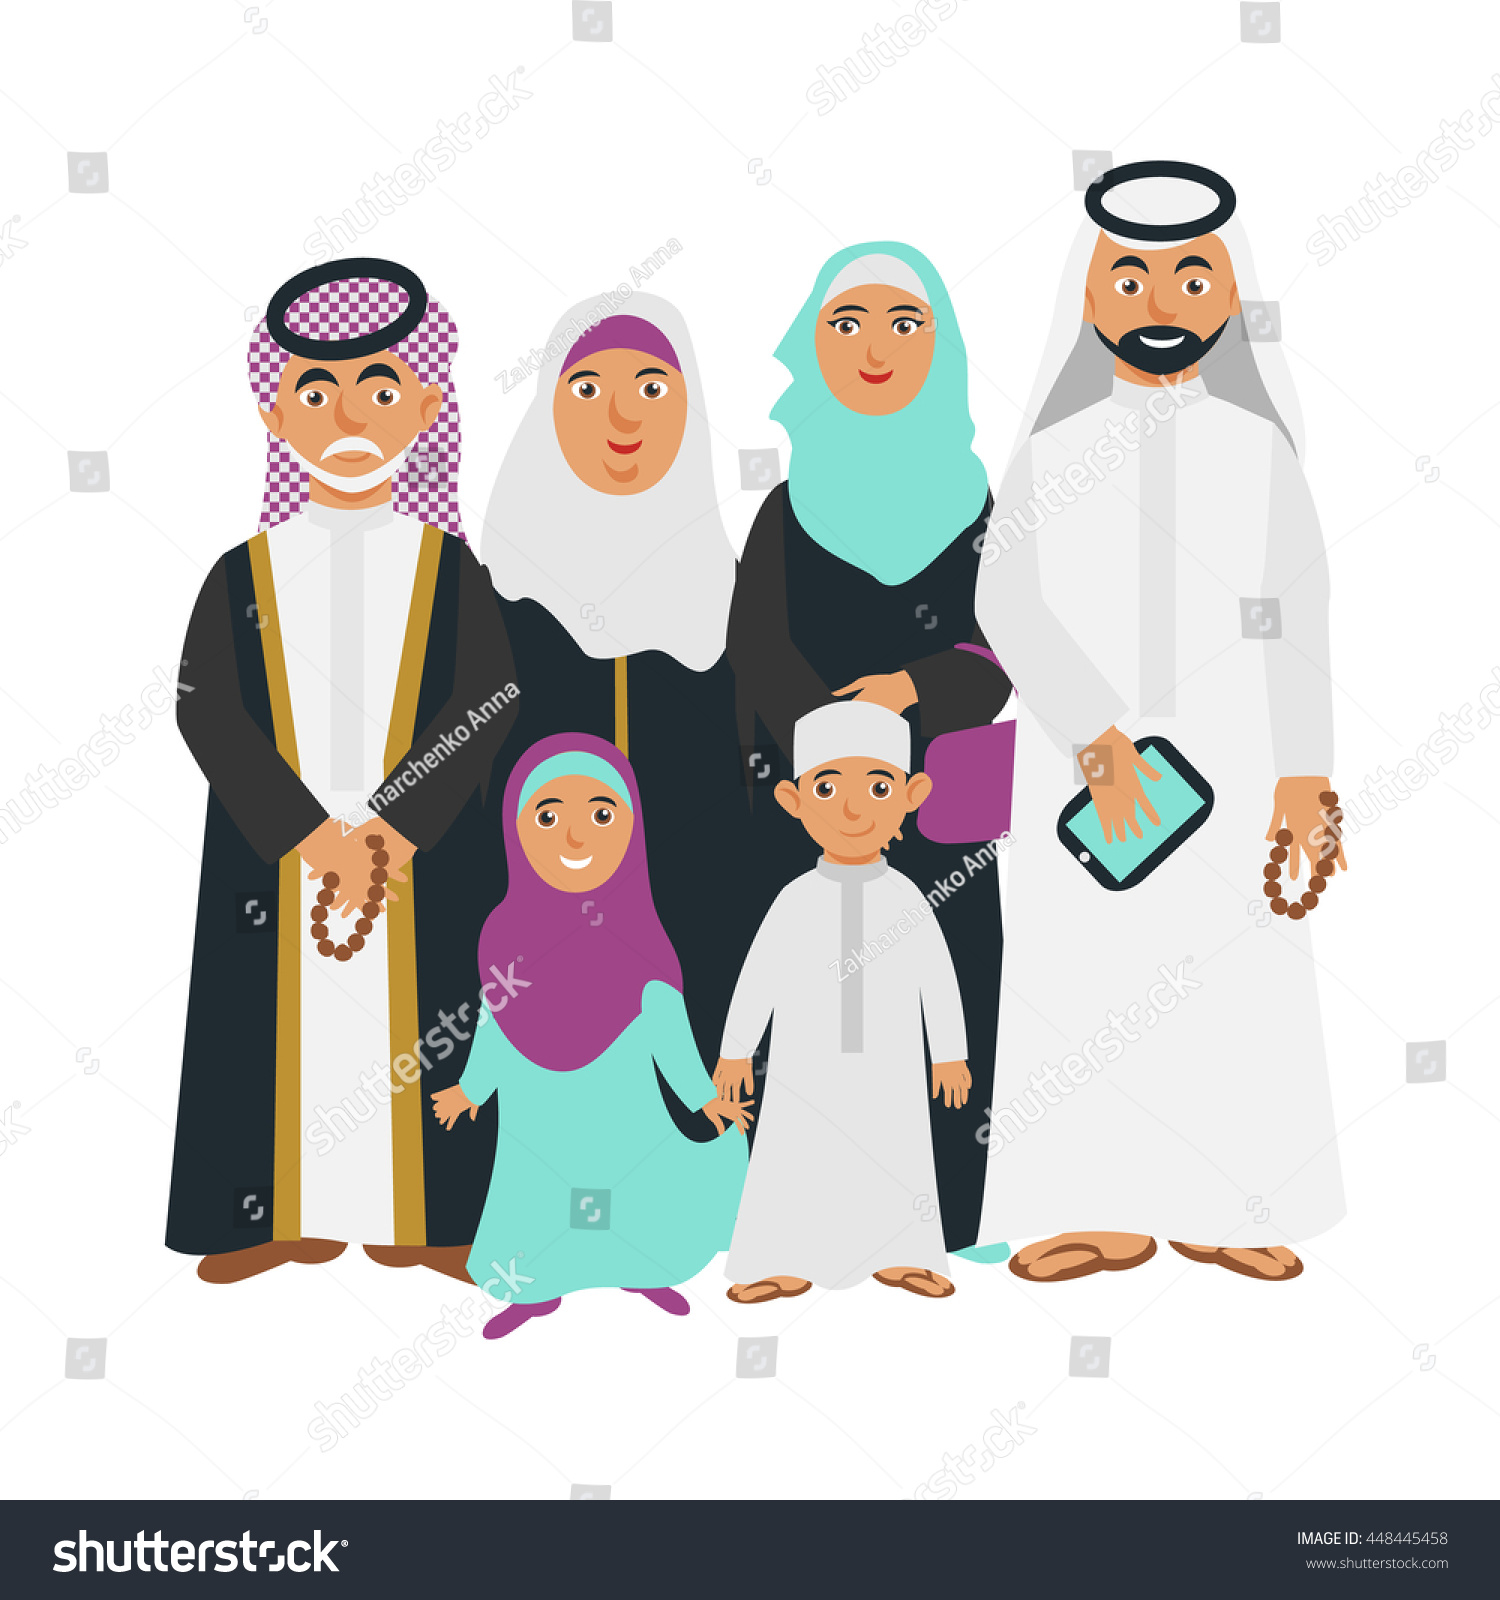 Arab Cartoon People Father With Gadget Stock Photo